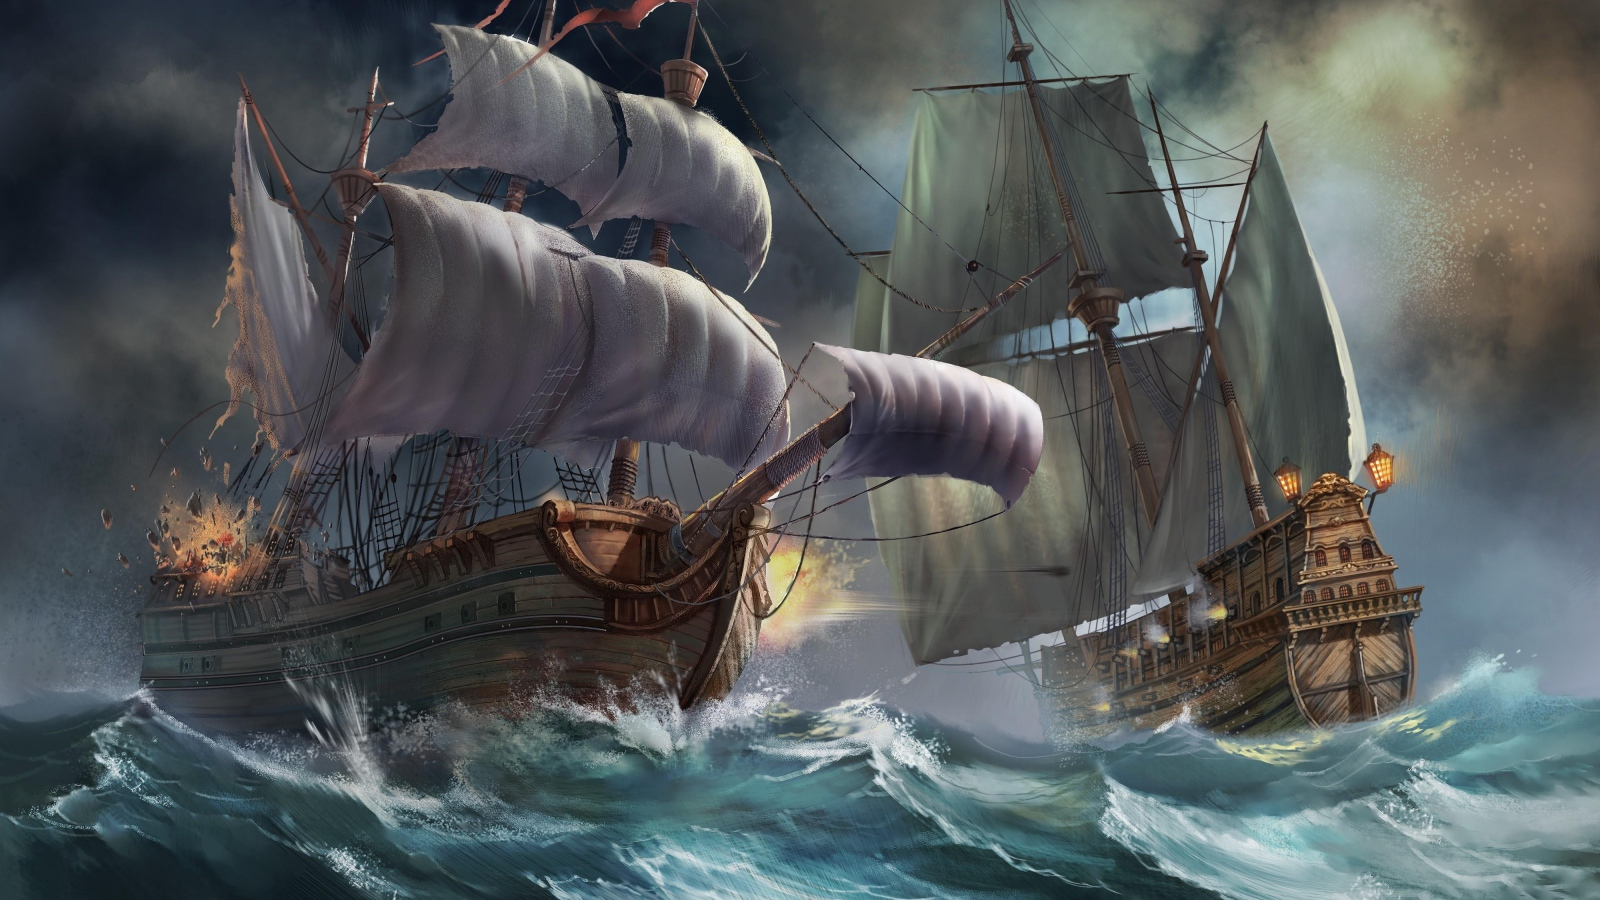 Pirates images Ships in a Storm HD wallpaper and background photos